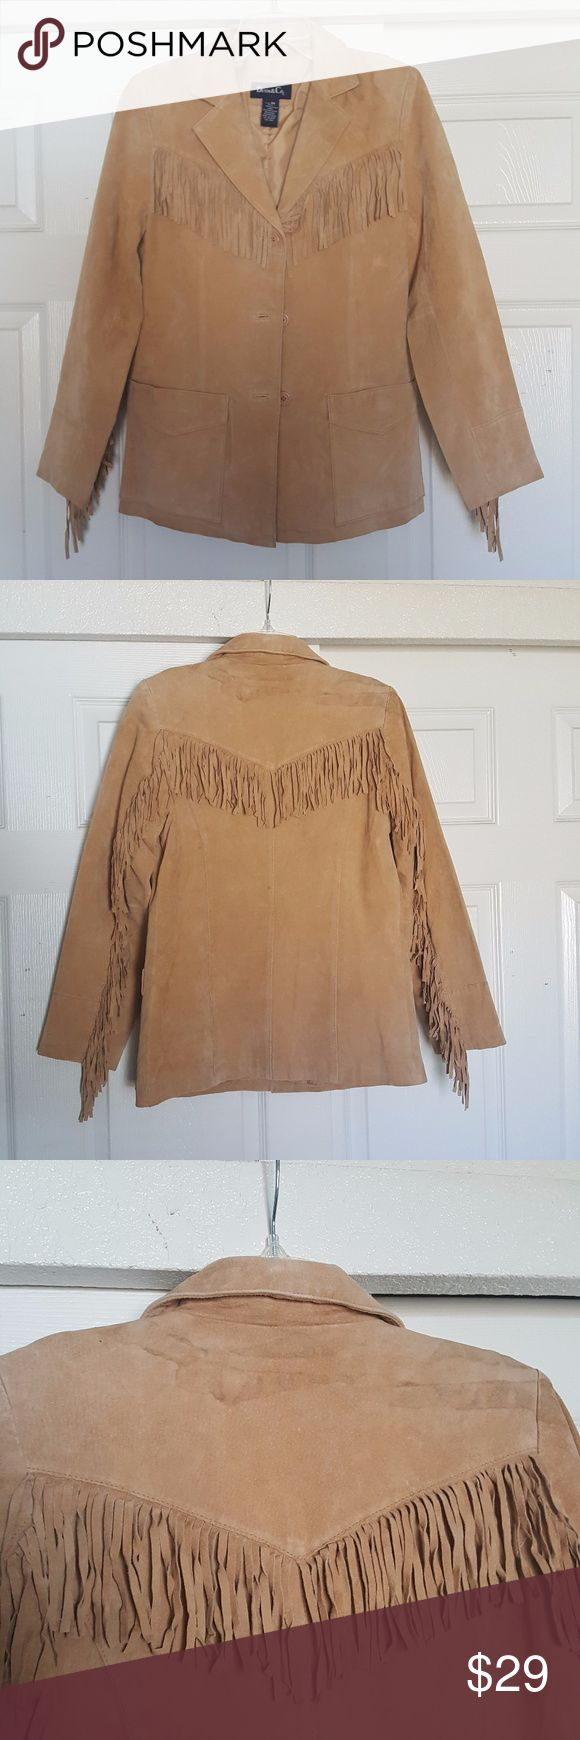 Denim & Co. Barn Fringed Leather Western Jacket Denim & Co. Leather Western Jacket, fringe detailing lends southwestern flair to the front yoke, back yoke, and back of each sleeve. Shell 100% leather; lining 100% polyester, Machine wash, tumble dry. Discoloration on upper back side below collar, shown in picture. Denim & Co. Jackets & Coats Blazers